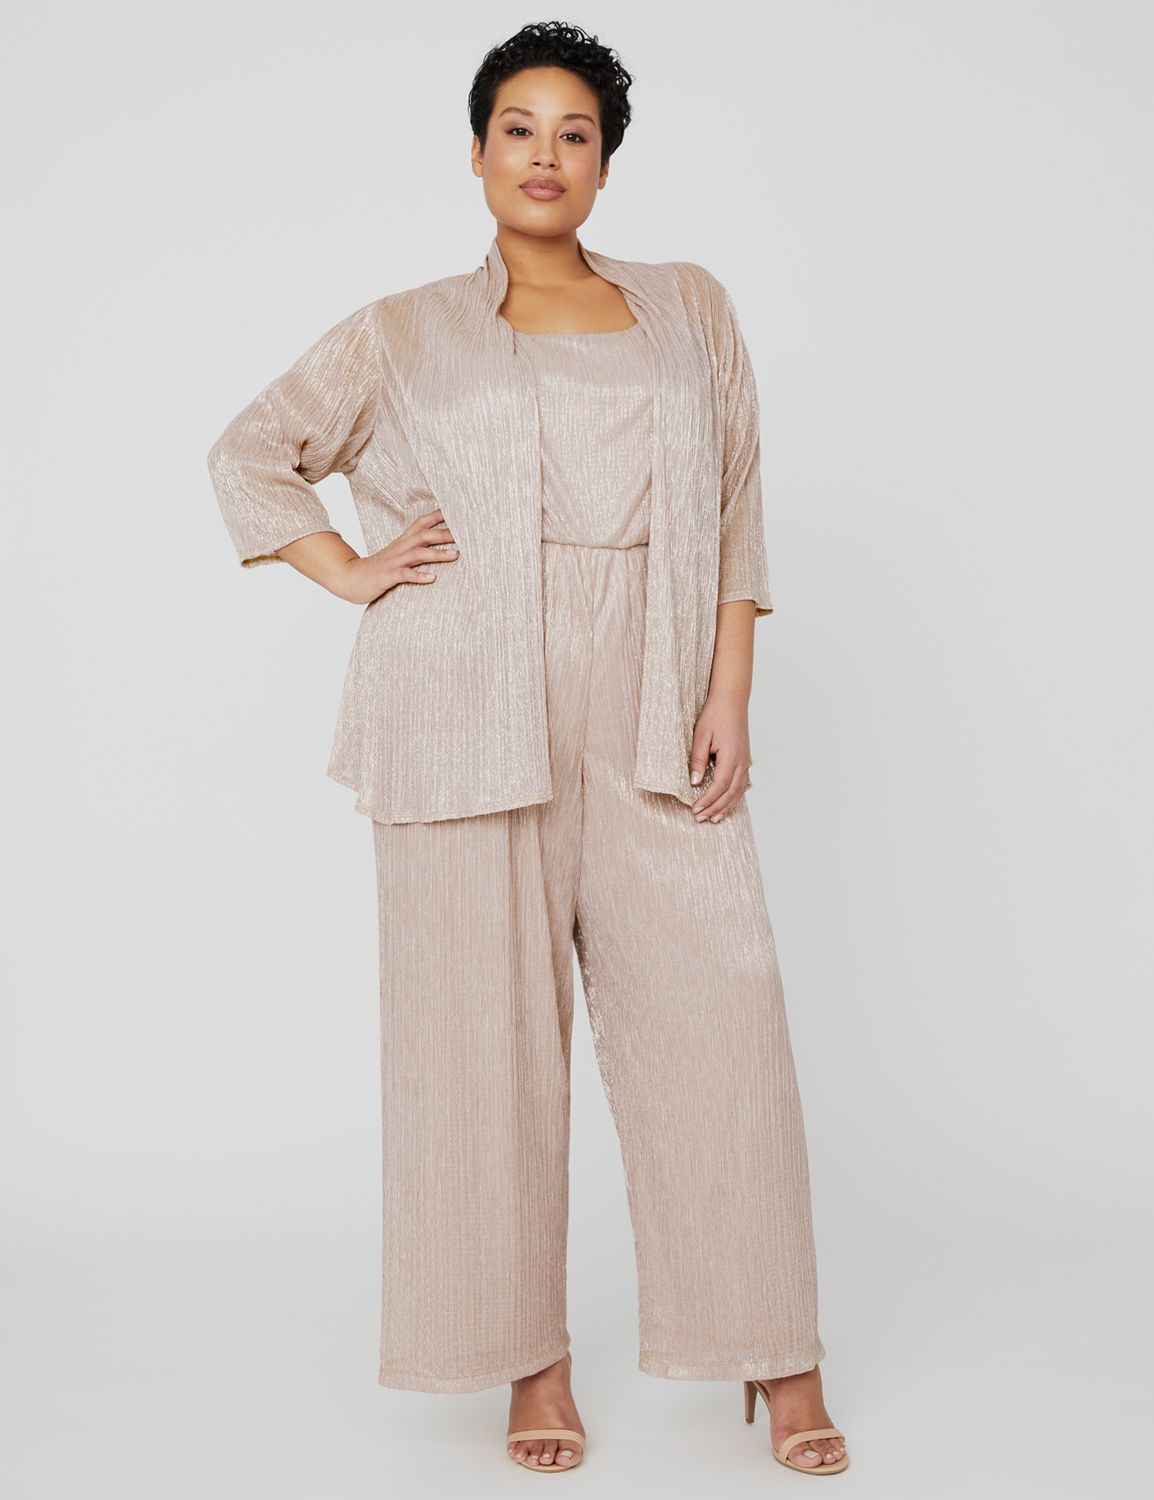 Shimmer Jumpsuit with Jacket 1090989 Jumpsuit with Jacket (94982 MP-300099379